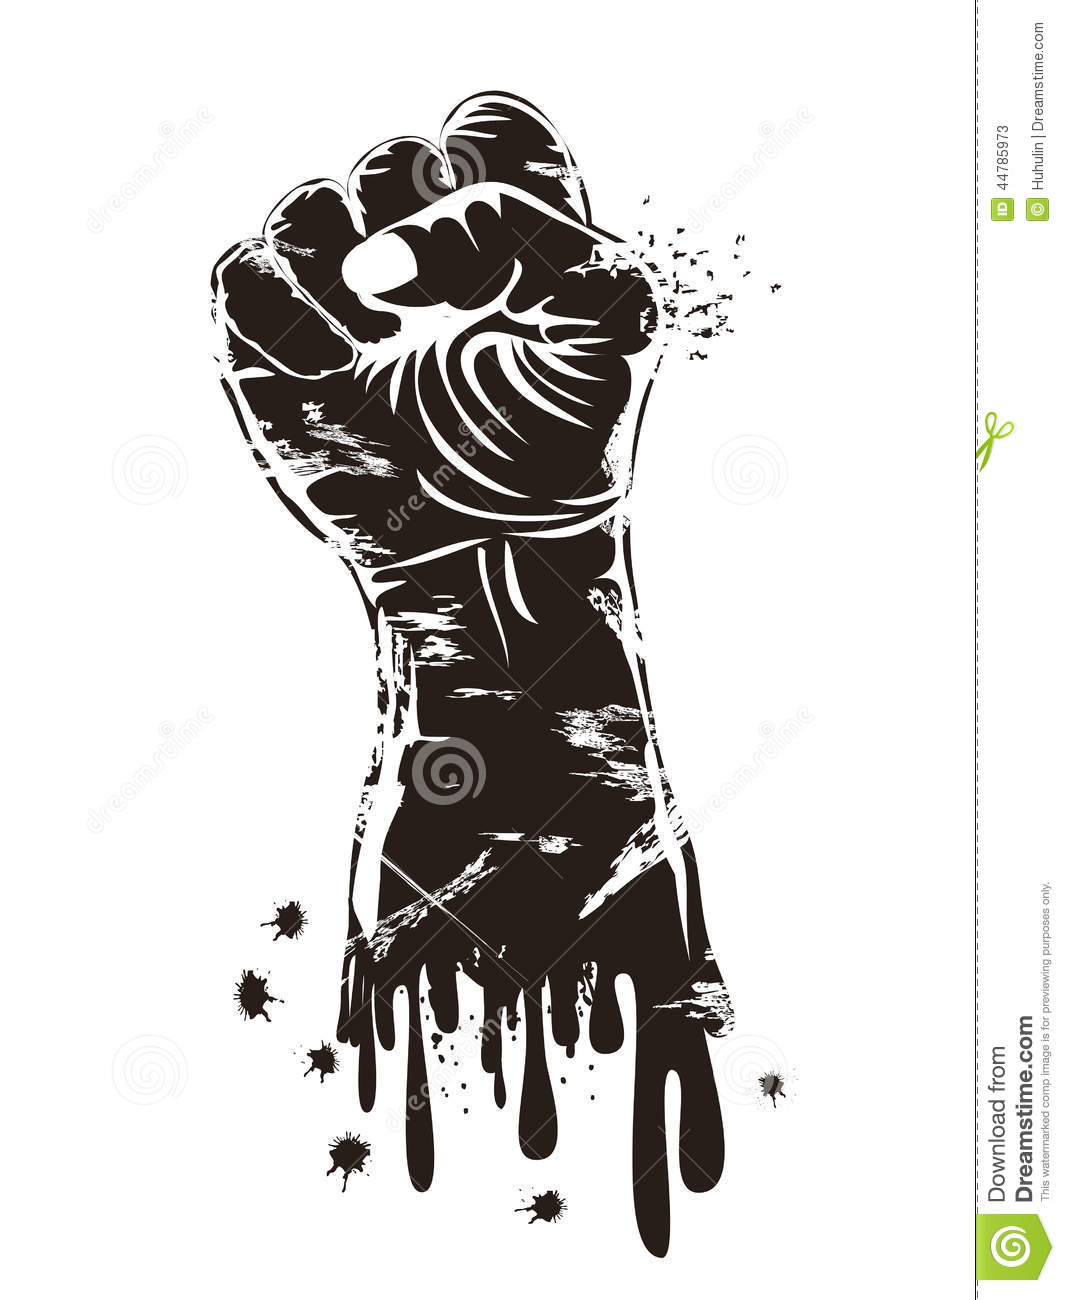 Grungy Fist Power Stock Vector Illustration Of Poster